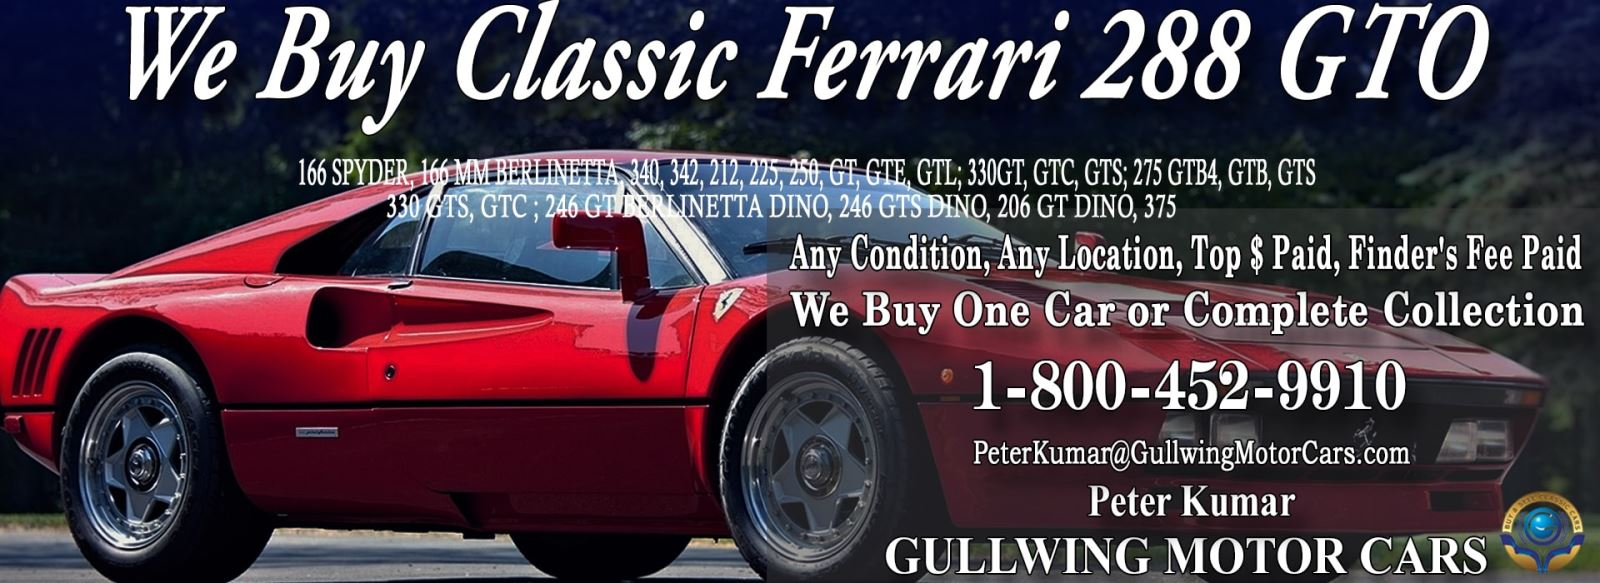 Classic Ferrari 288 GTO for sale, we buy vintage Ferrari 288GTO. Call Peter Kumar. Gullwing Motor